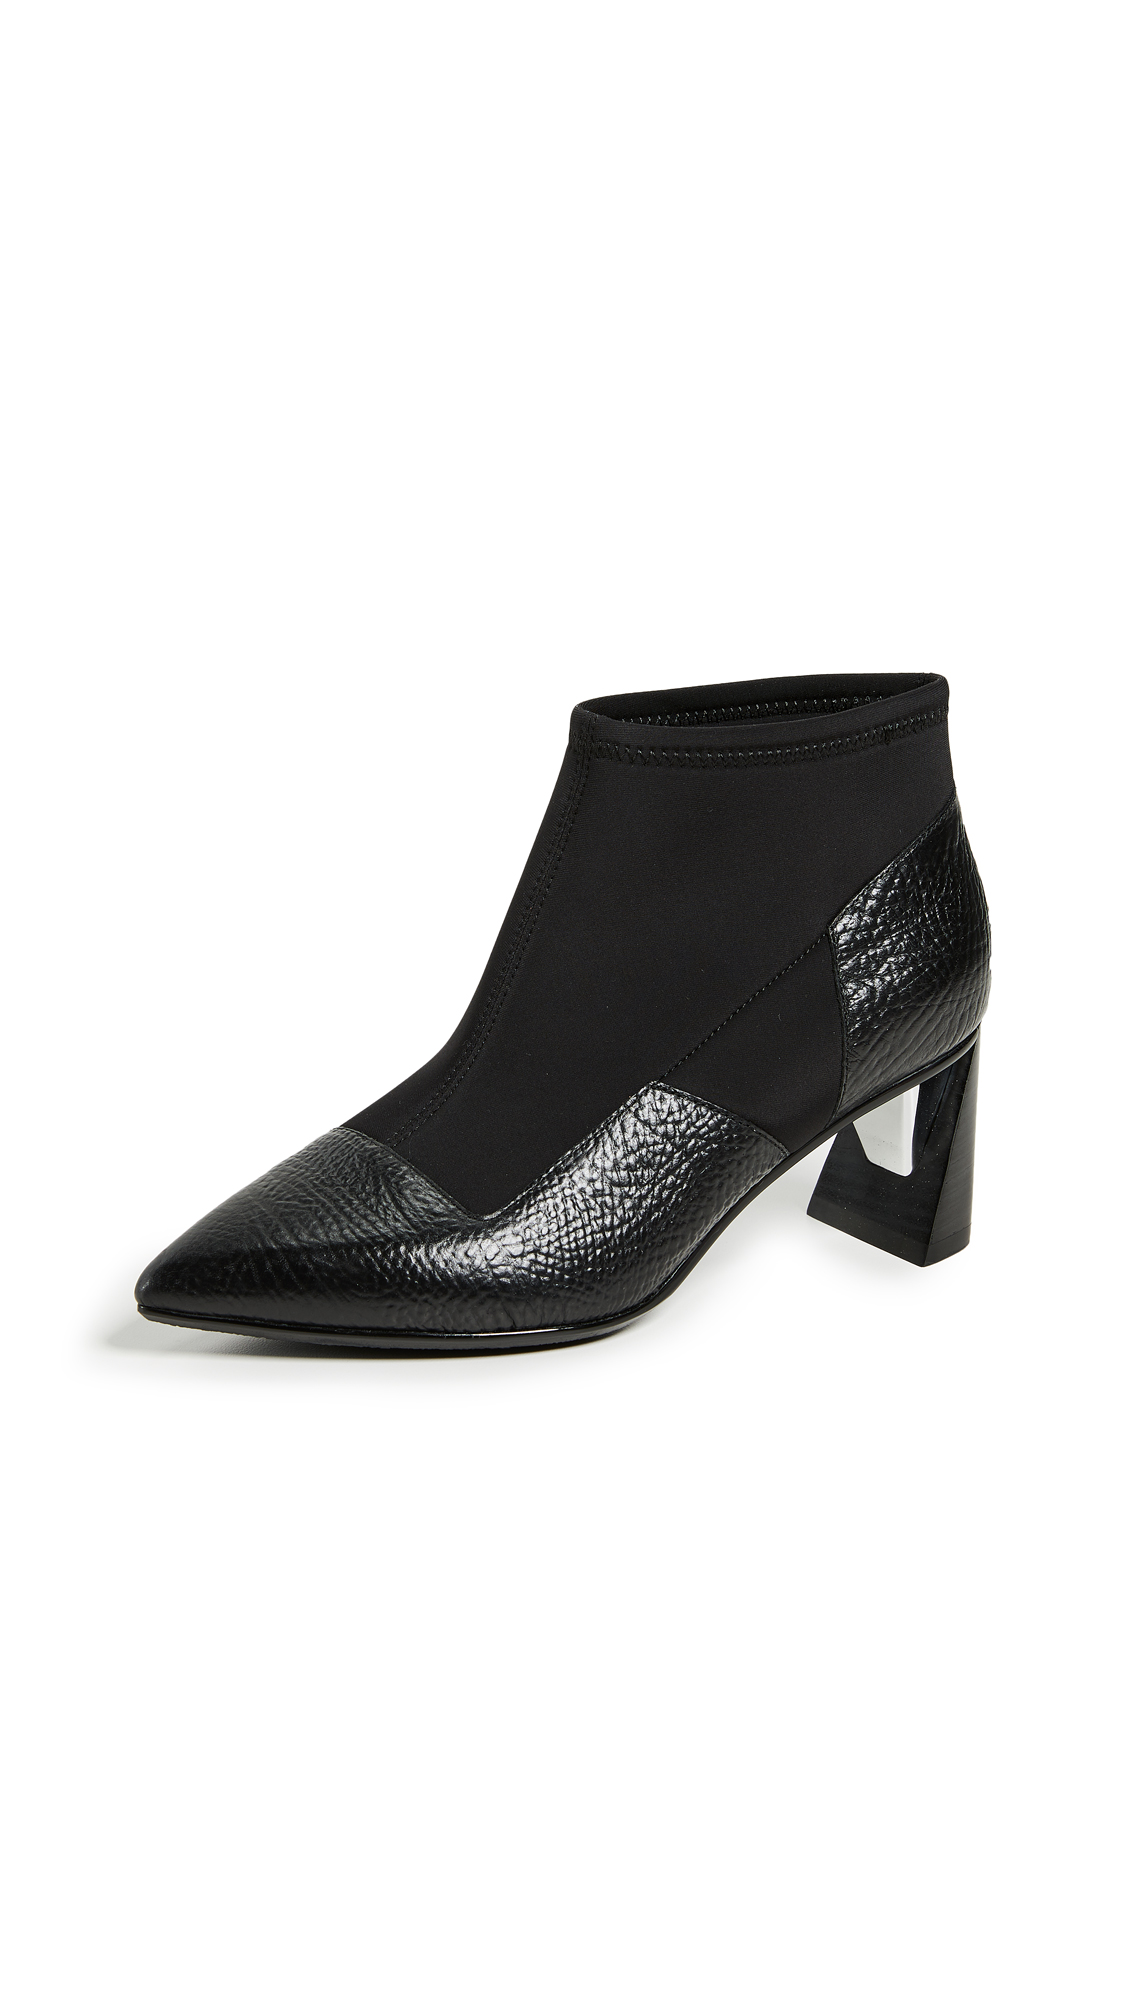 United Nude Zinc Vita Booties - Black